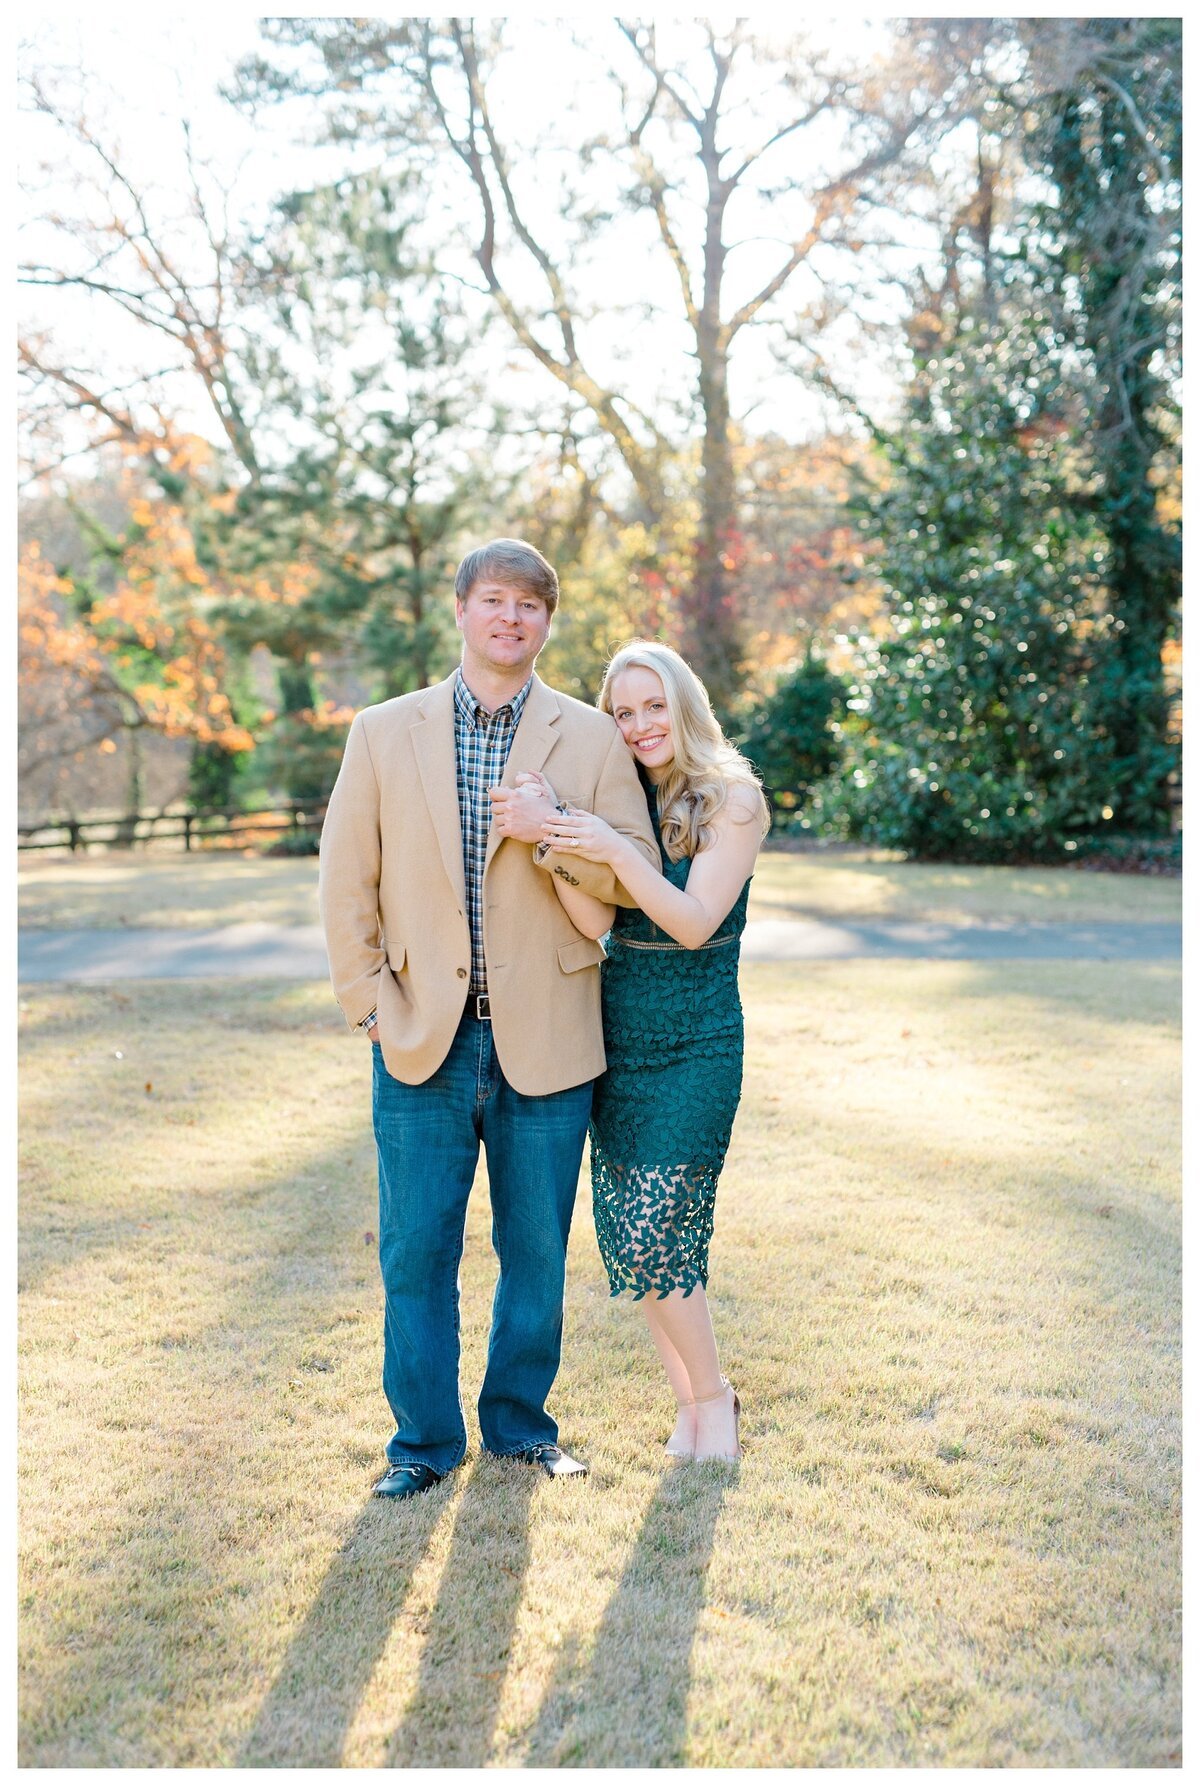 canady-engagements-atlanta-wedding-photographer-12